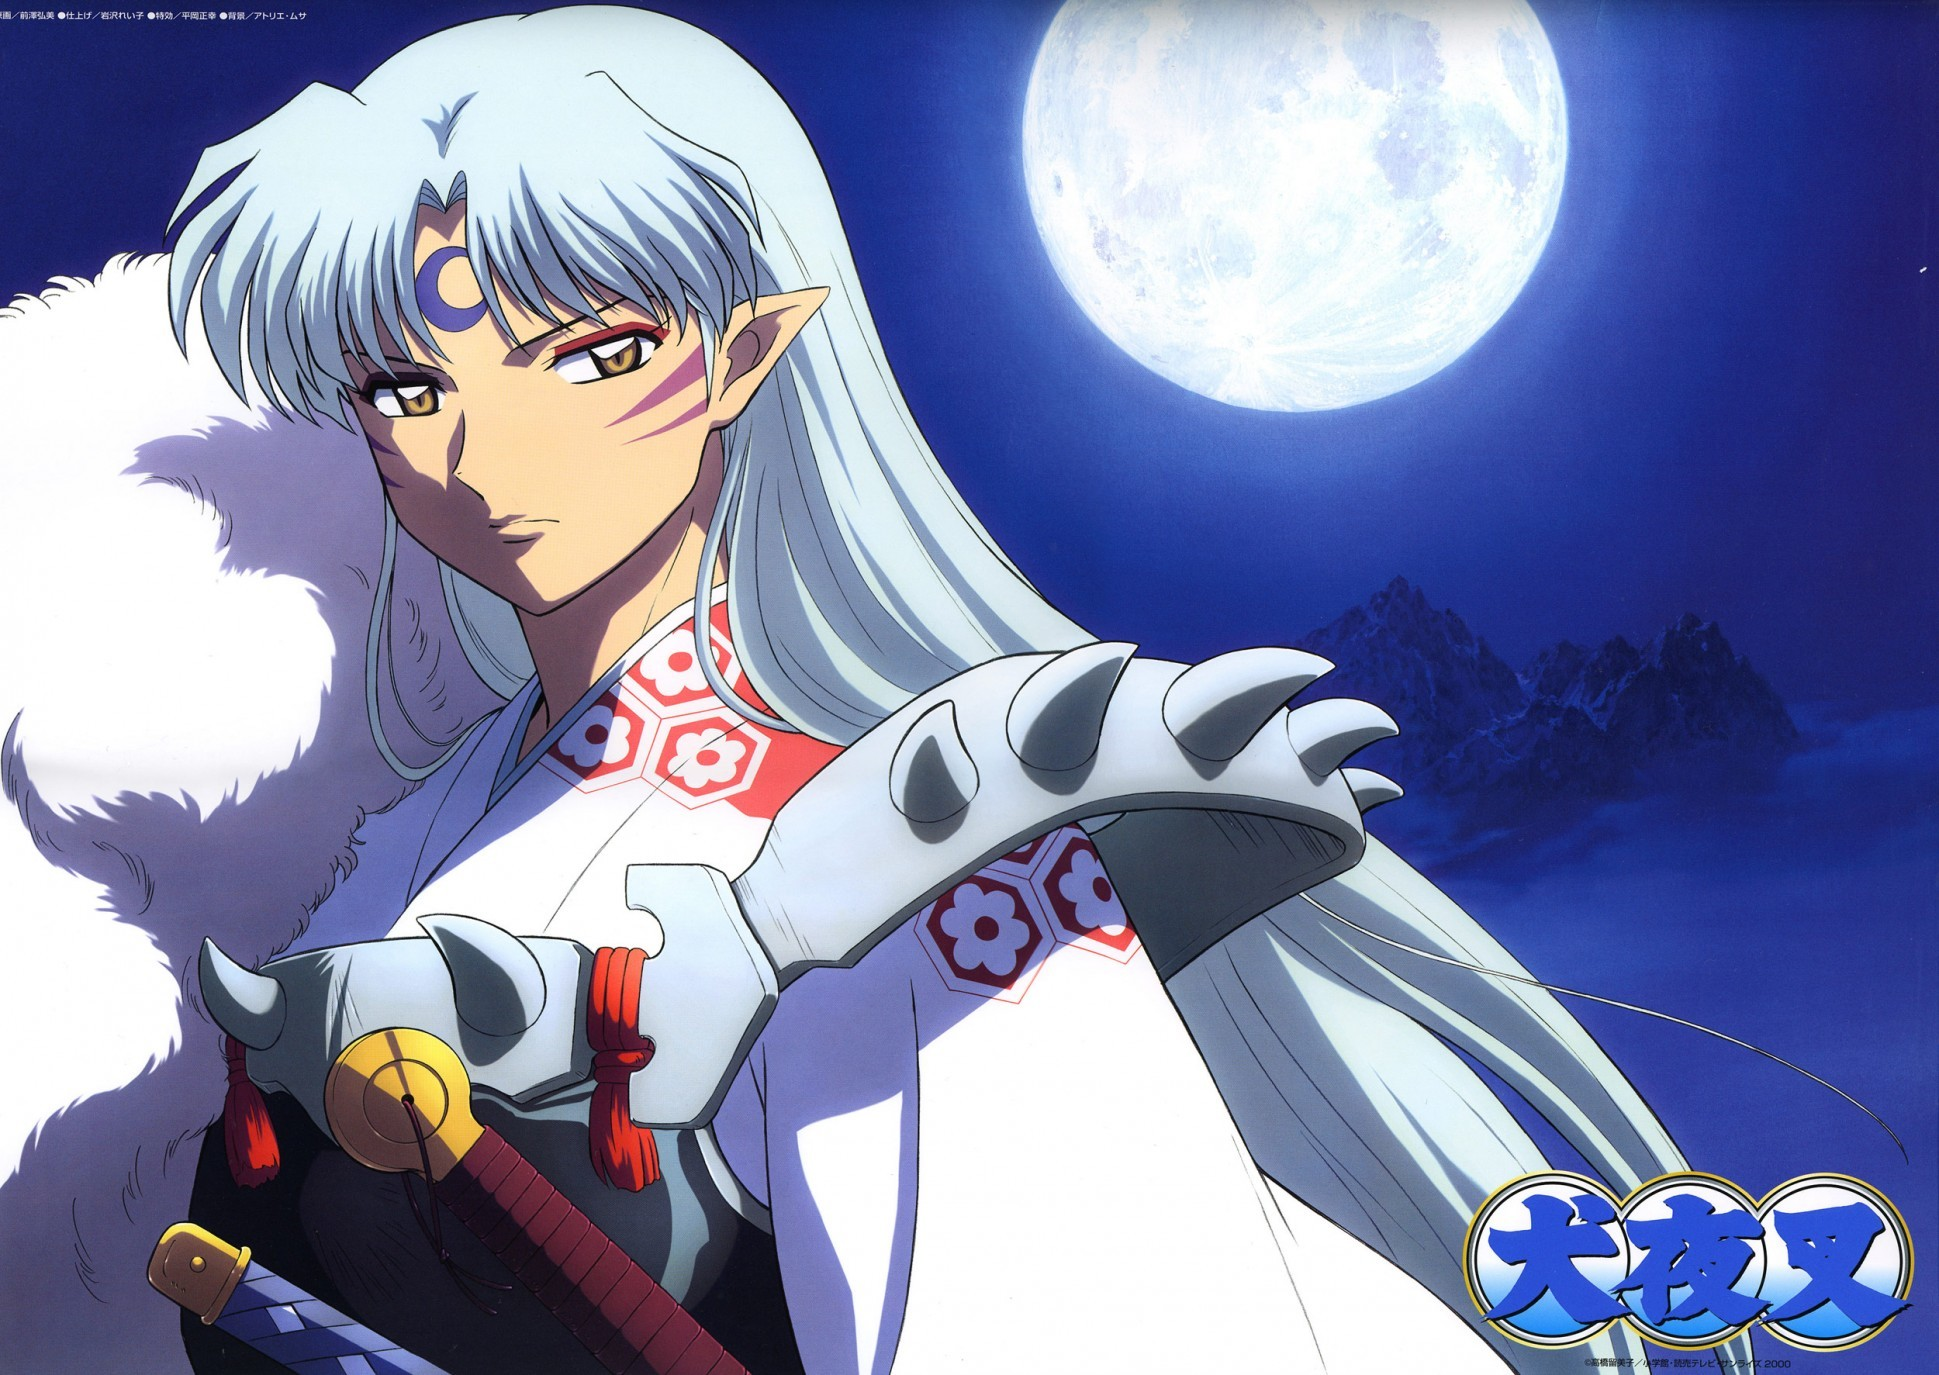 1939x1375 inuyasha image windows wallpapers hd download free amazing background  images mac tablet